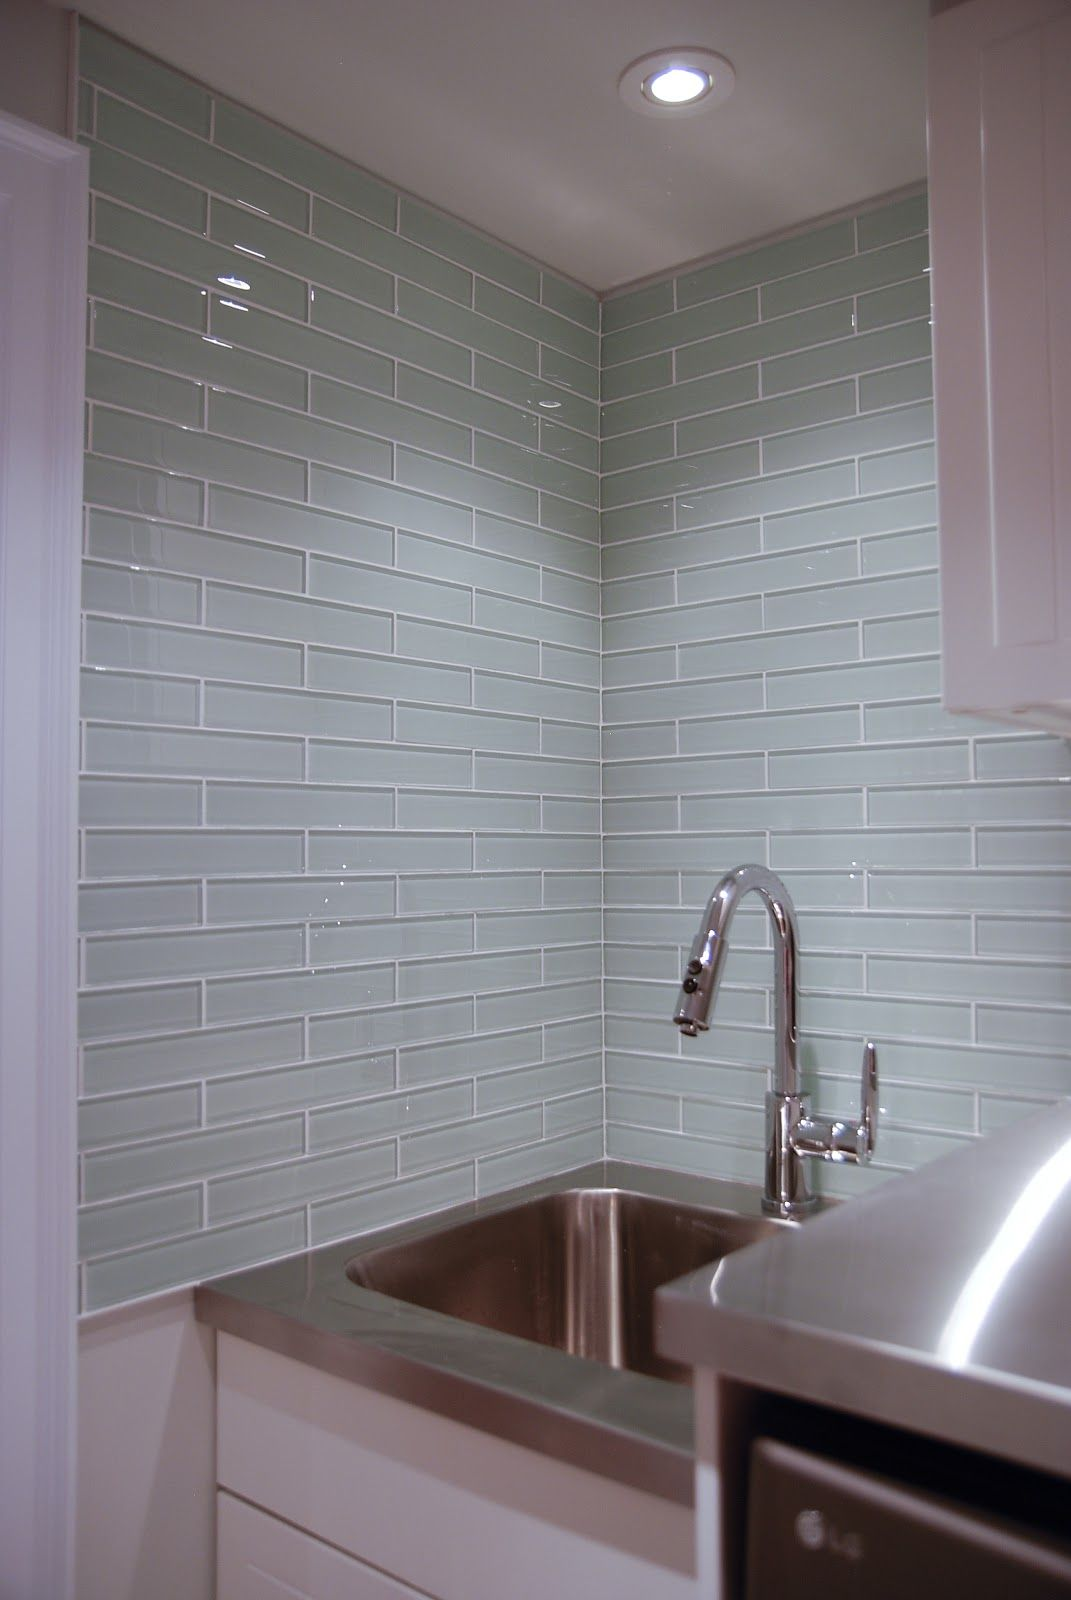 Badkamer 3x1 Glass Tile Laundry Room Backsplash Badkamer Badkamer Tegels